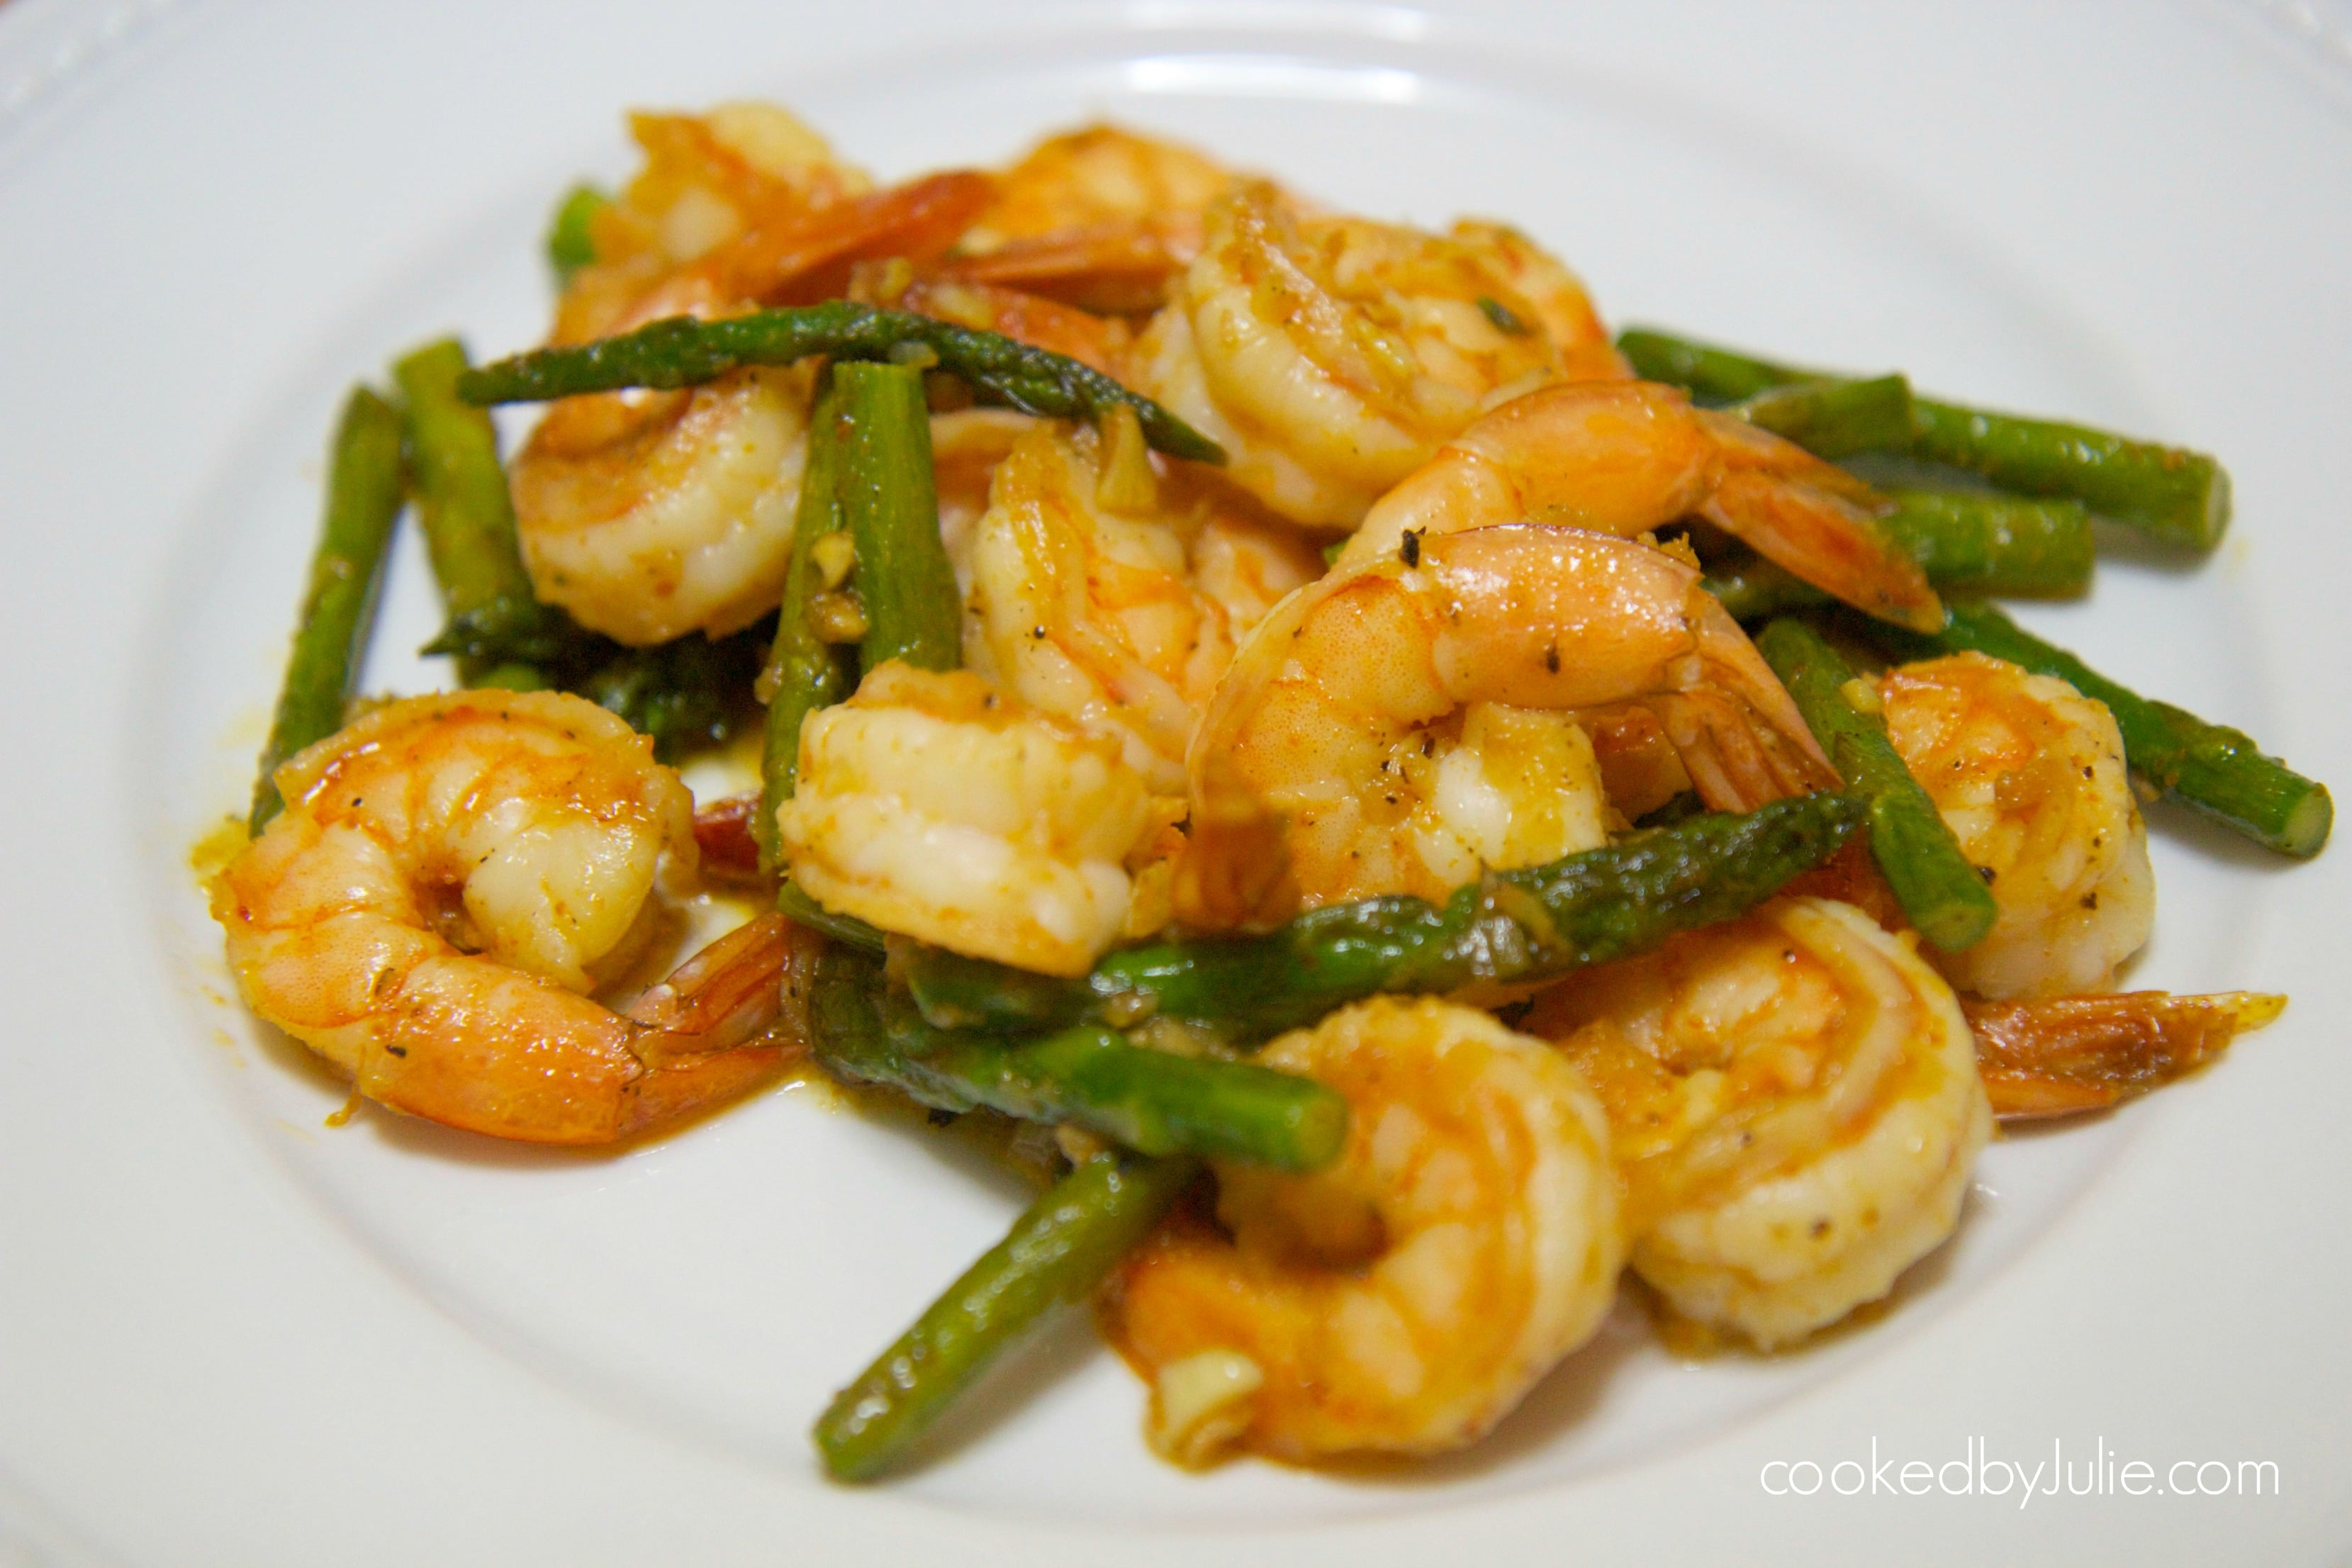 chili garlic shrimp and asparagus